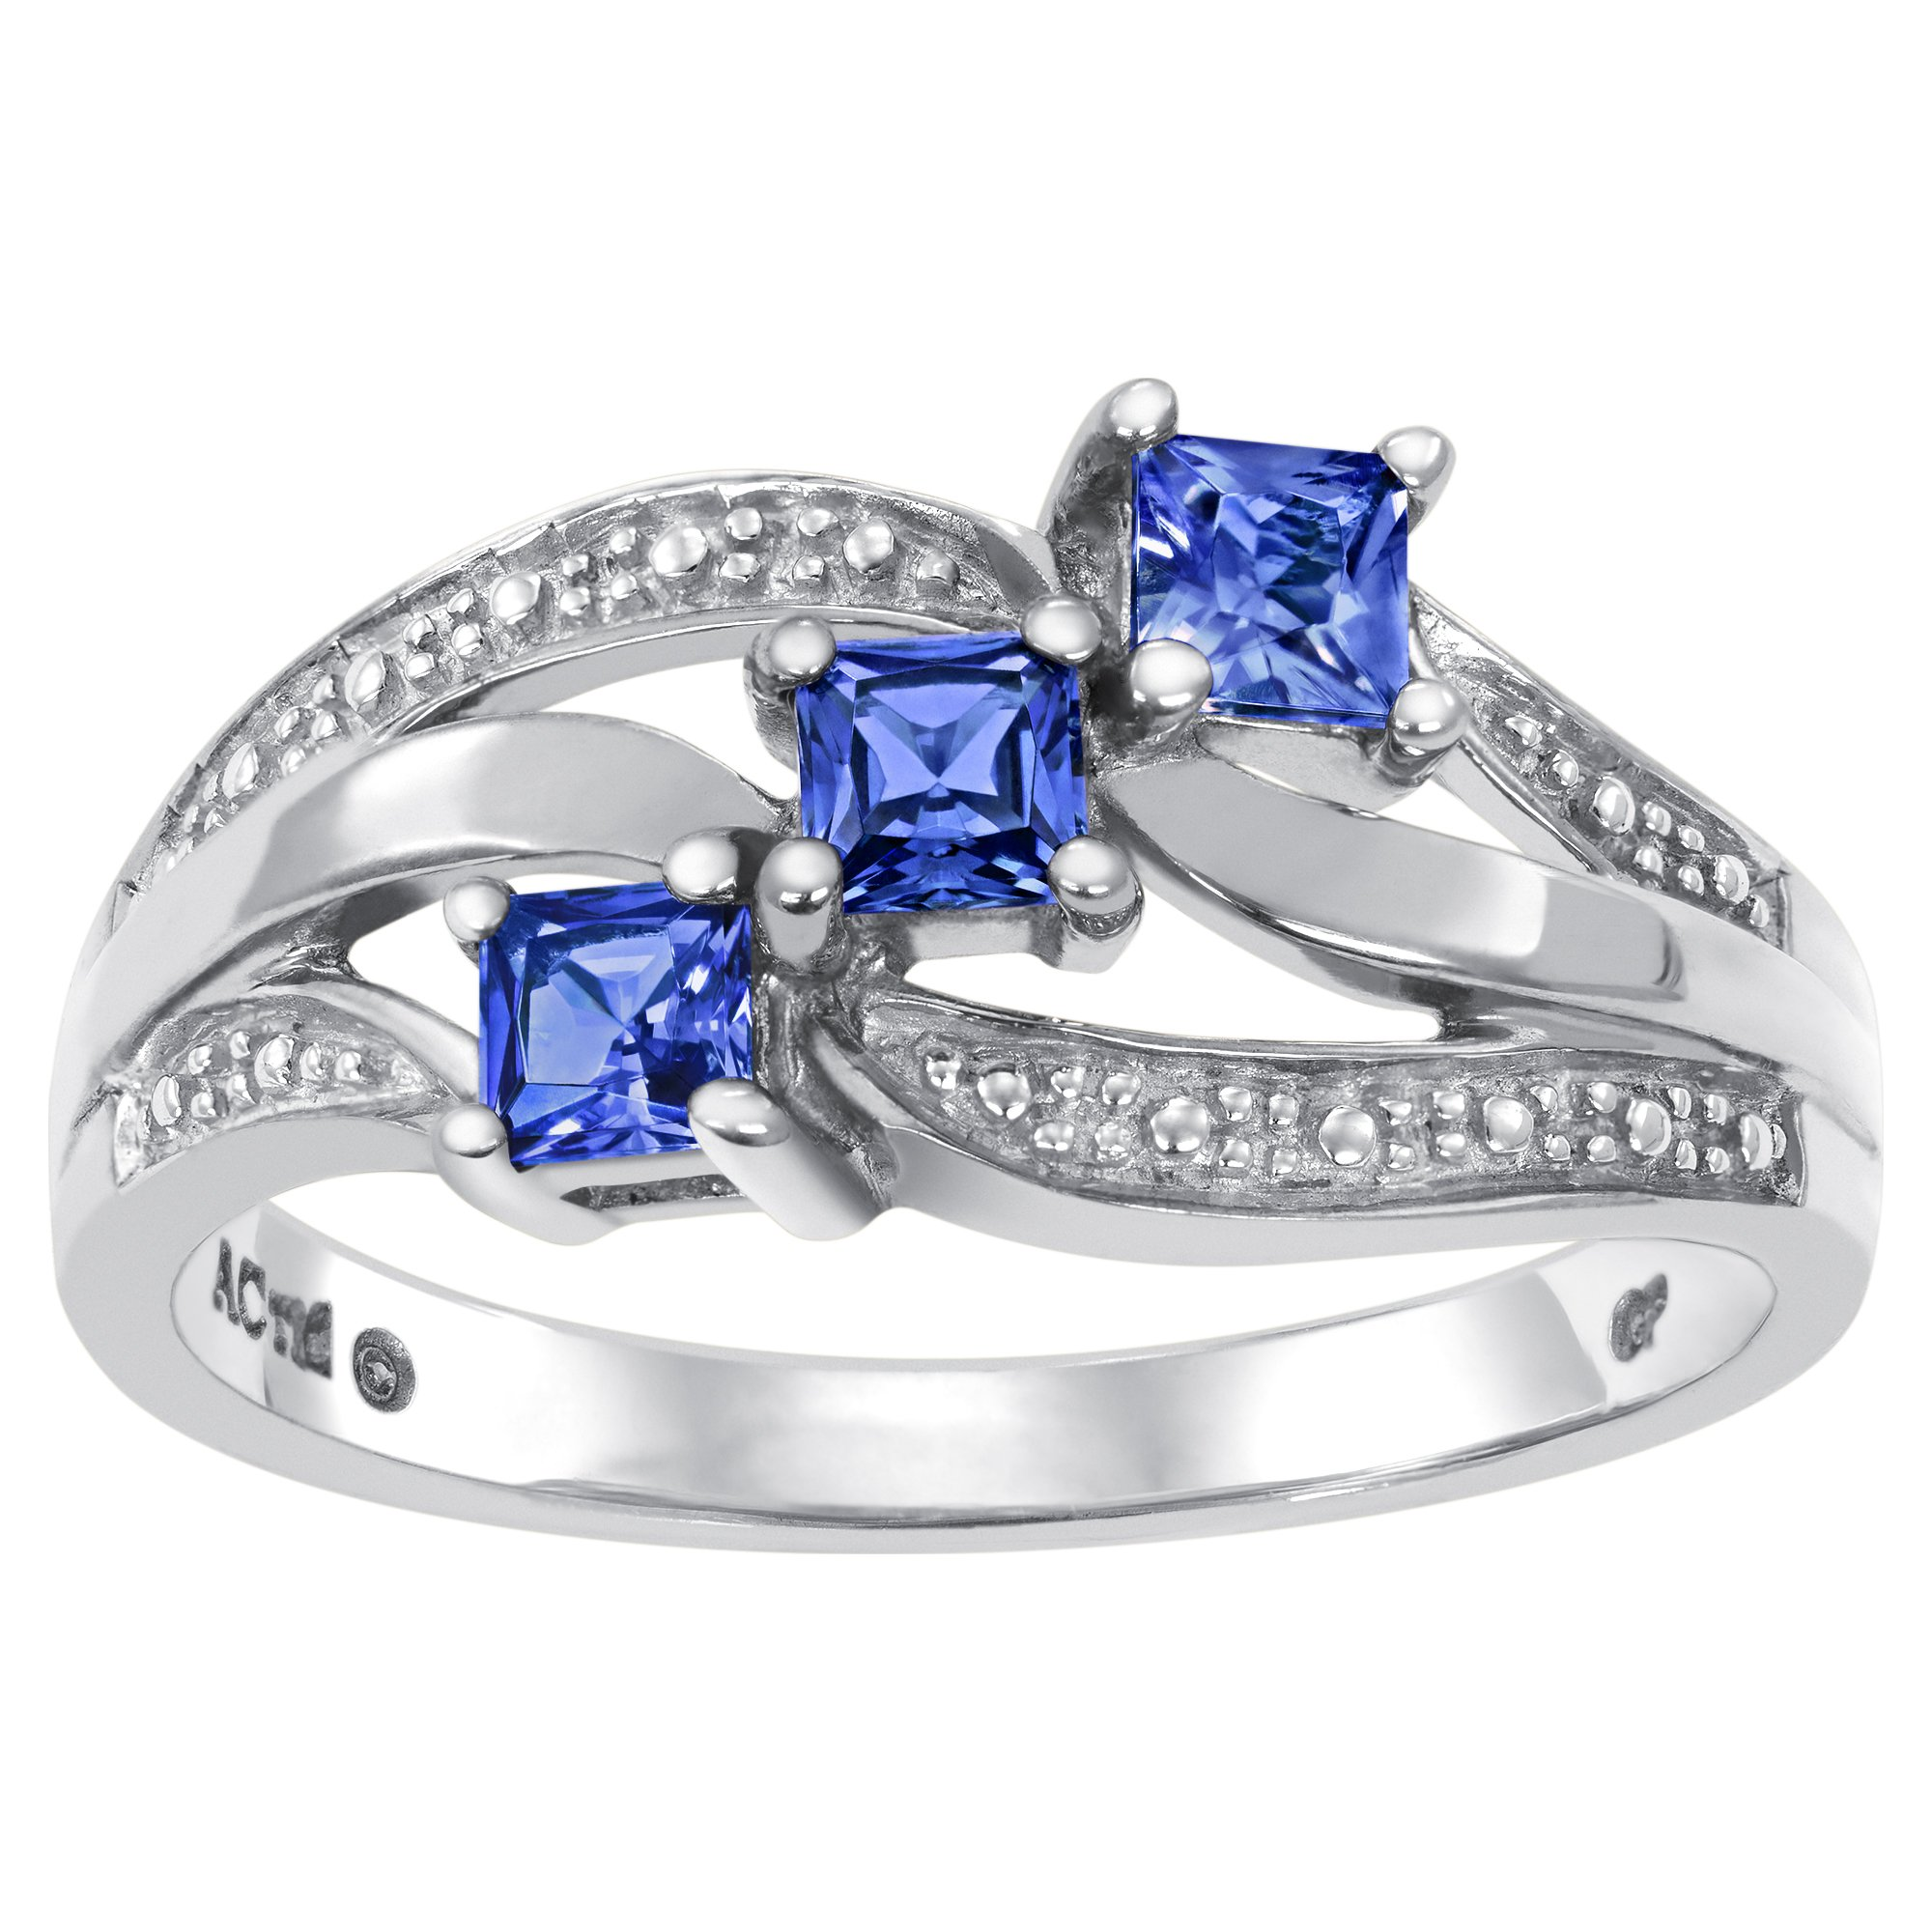 ArtCarved Open Rose Simulated Sapphire September Birthstone Ring, Sterling Silver, Size 8.5